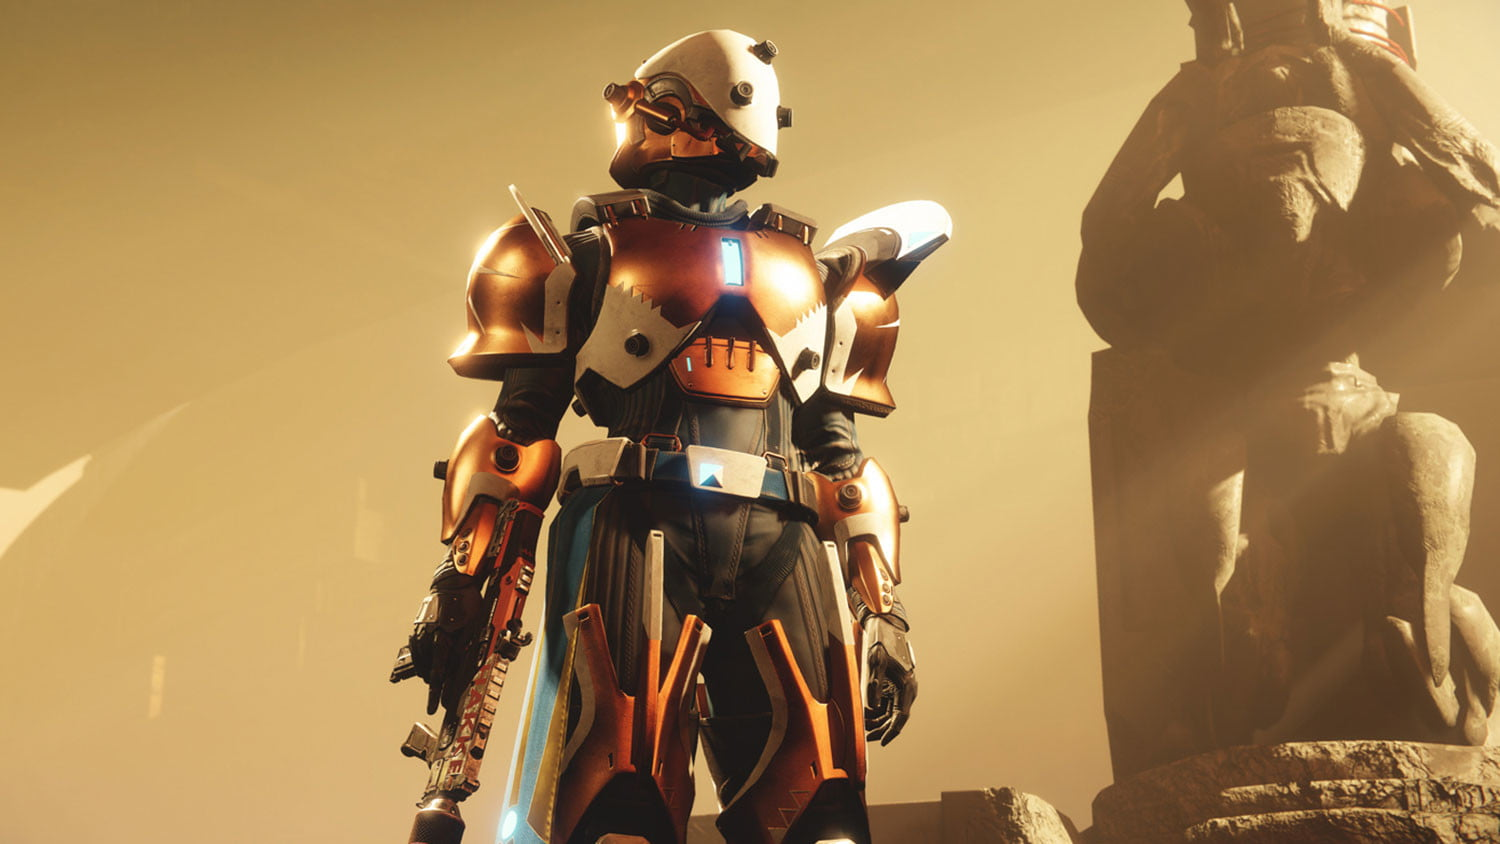 destiny-is-five-years-old-and-we-still-love-it-dearly